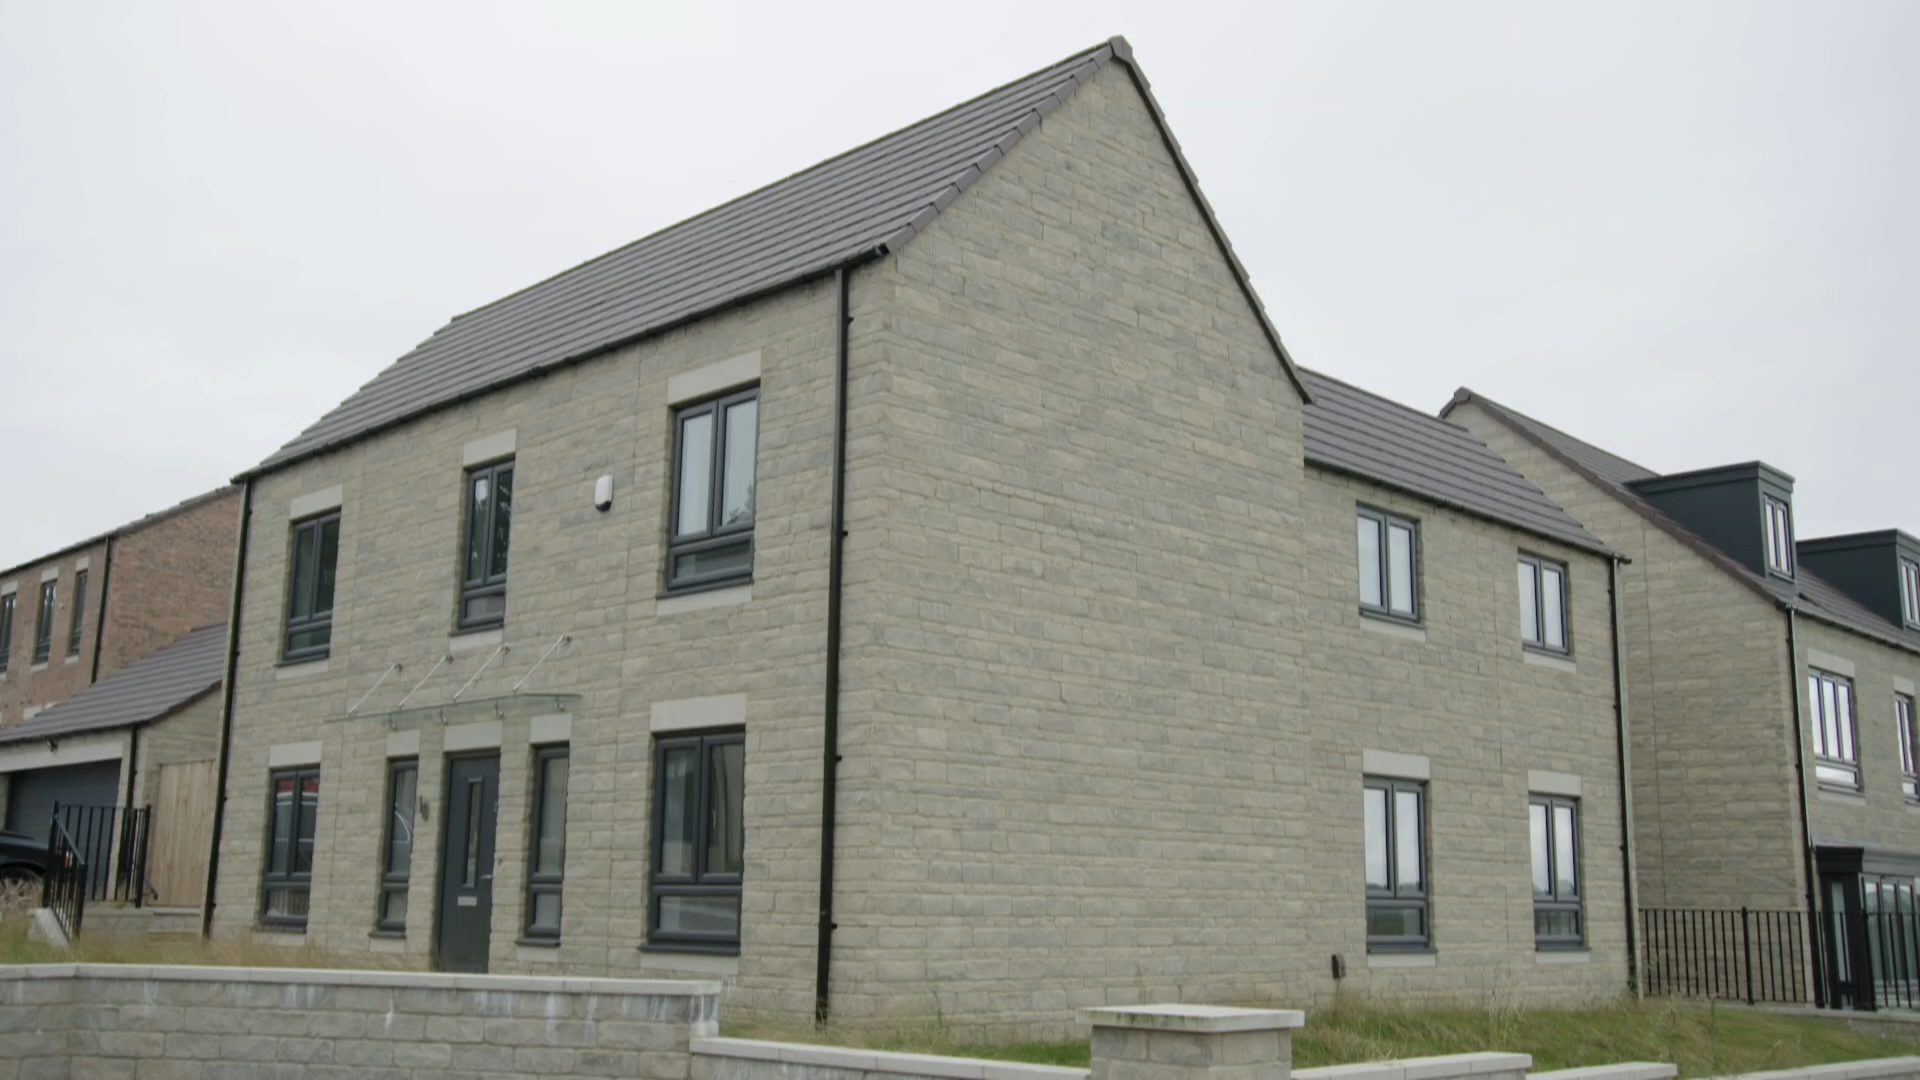 Will 'build back better' promise deliver homes fit for the future?